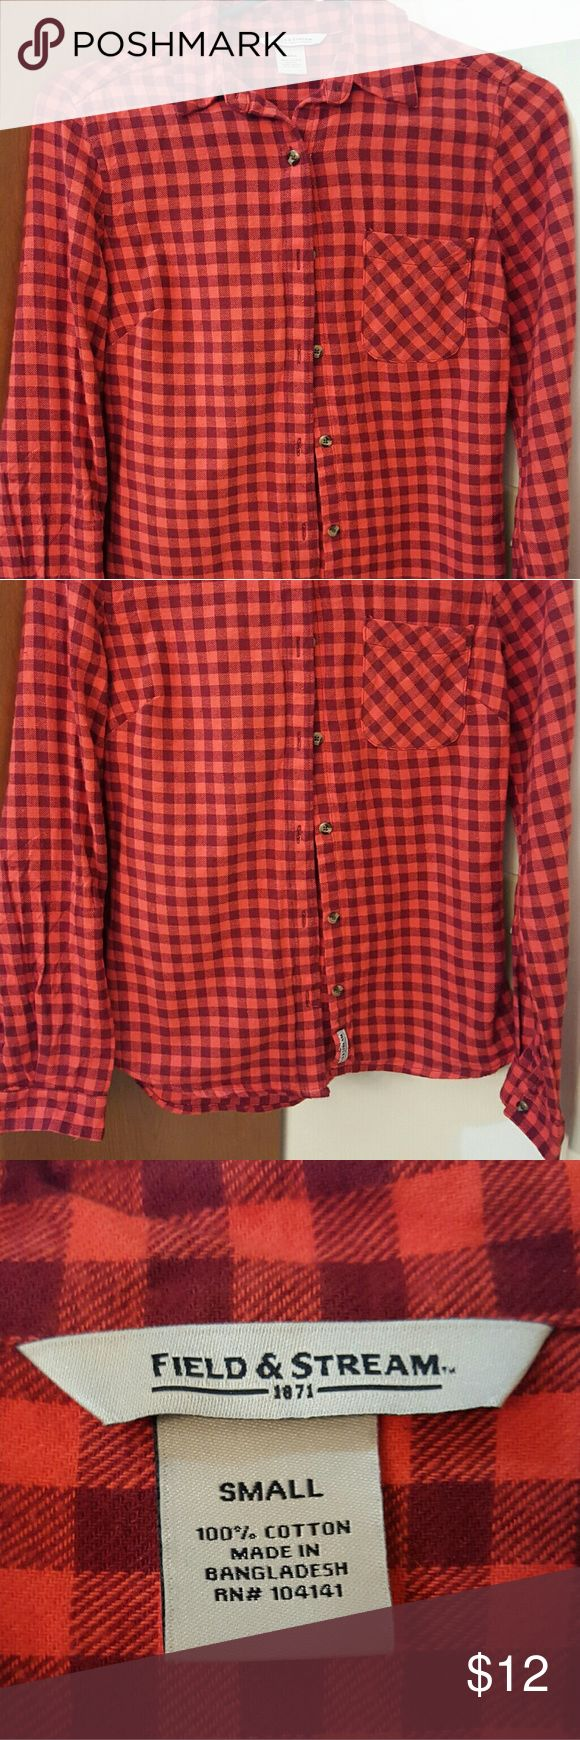 Ladies flannel shirt Red and black plaid, ladies soft flannel, long sleeve,  button down and sleeve shirt.  Excellent condition field and stream Tops Button Down Shirts